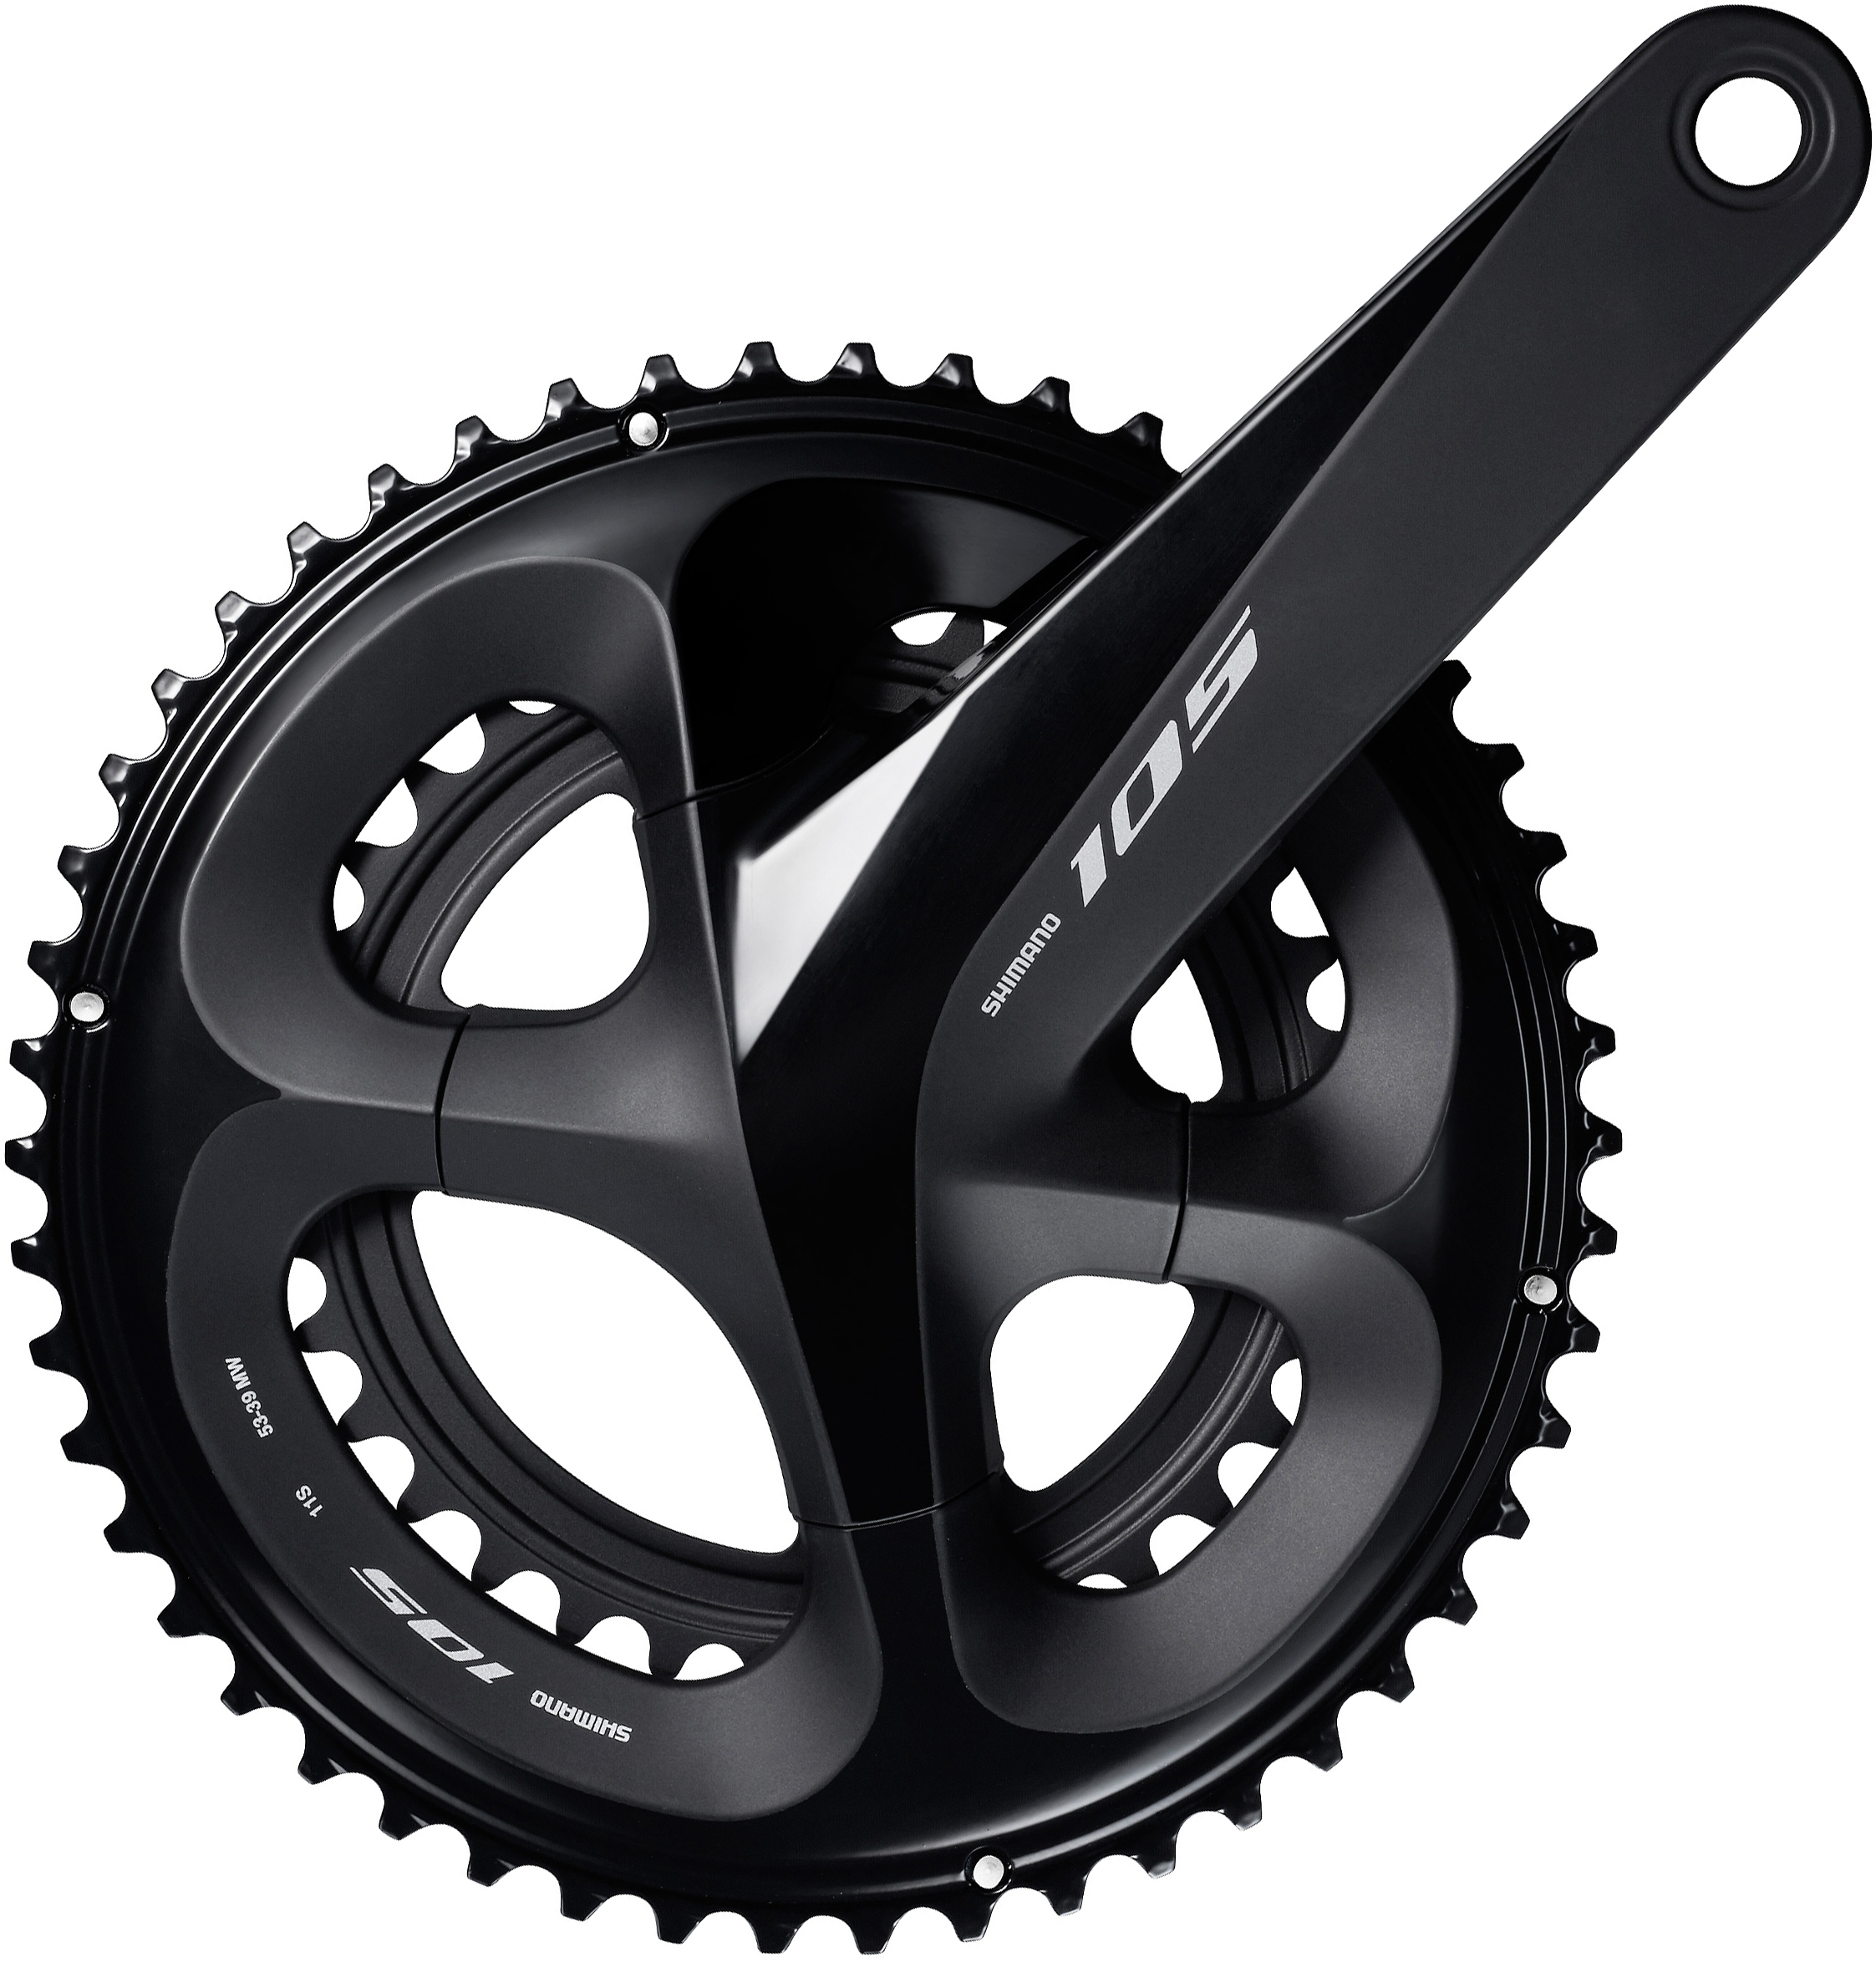 827863ca066 Wiggle | Shimano 105 R7000 Compact Chainset (11 Speed) | Chainsets